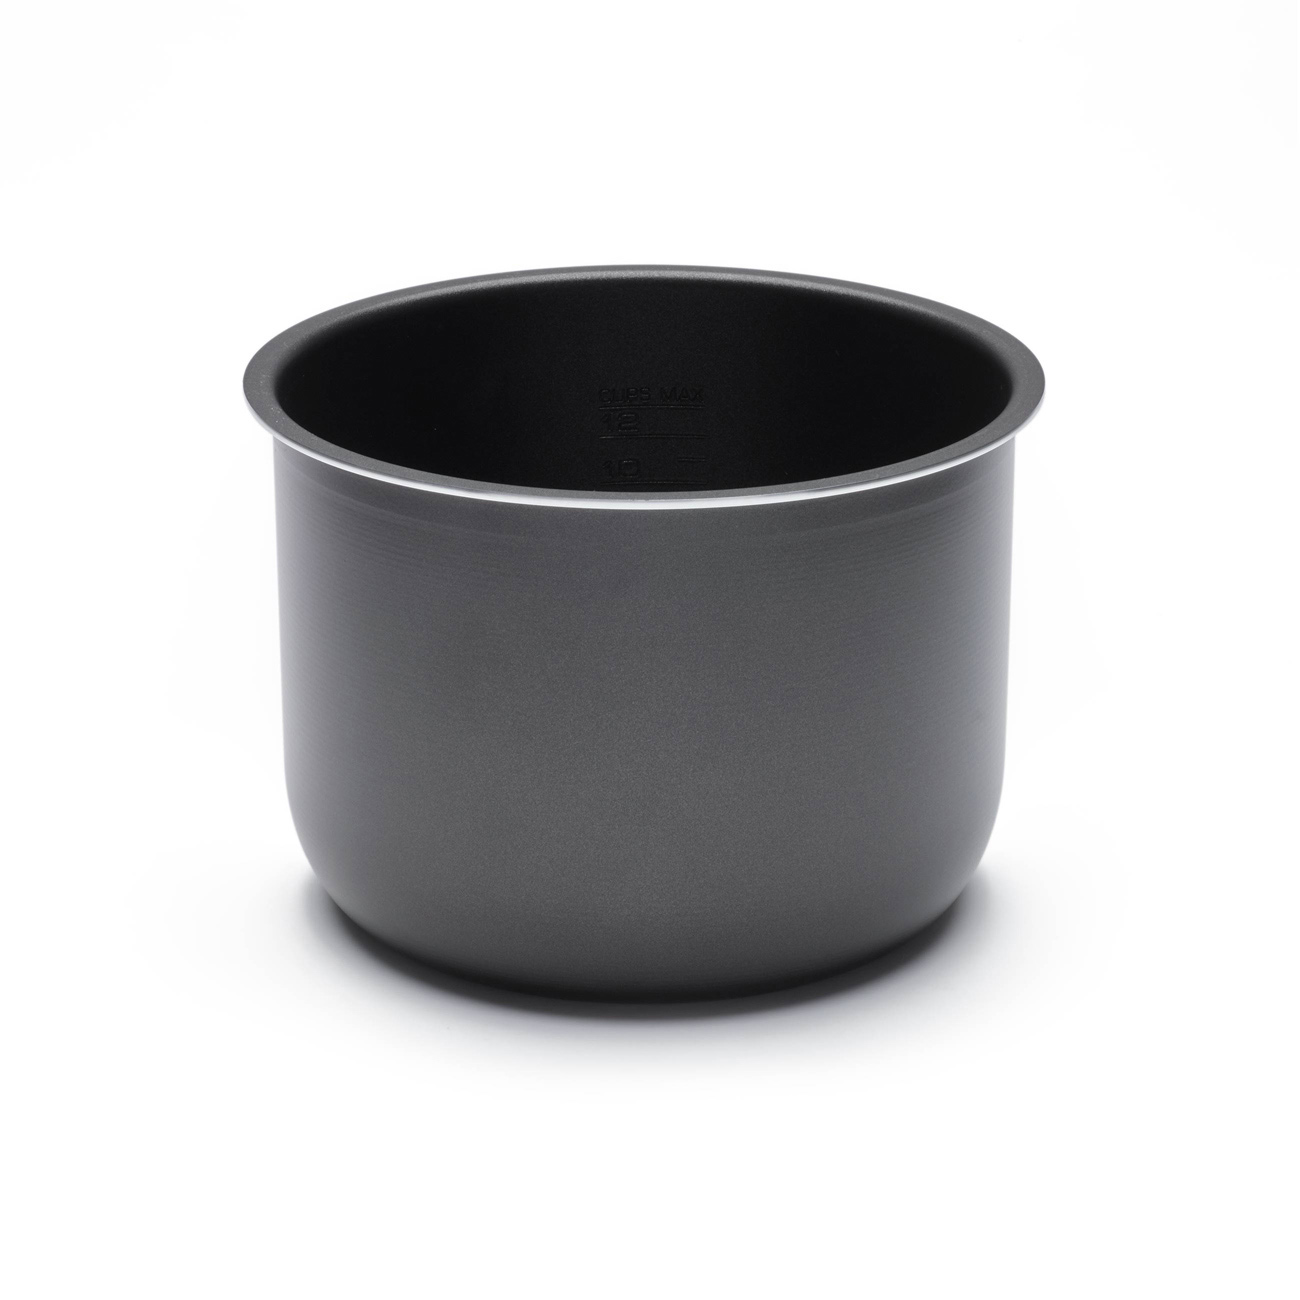 Removable Cooking Bowl (6Qt)